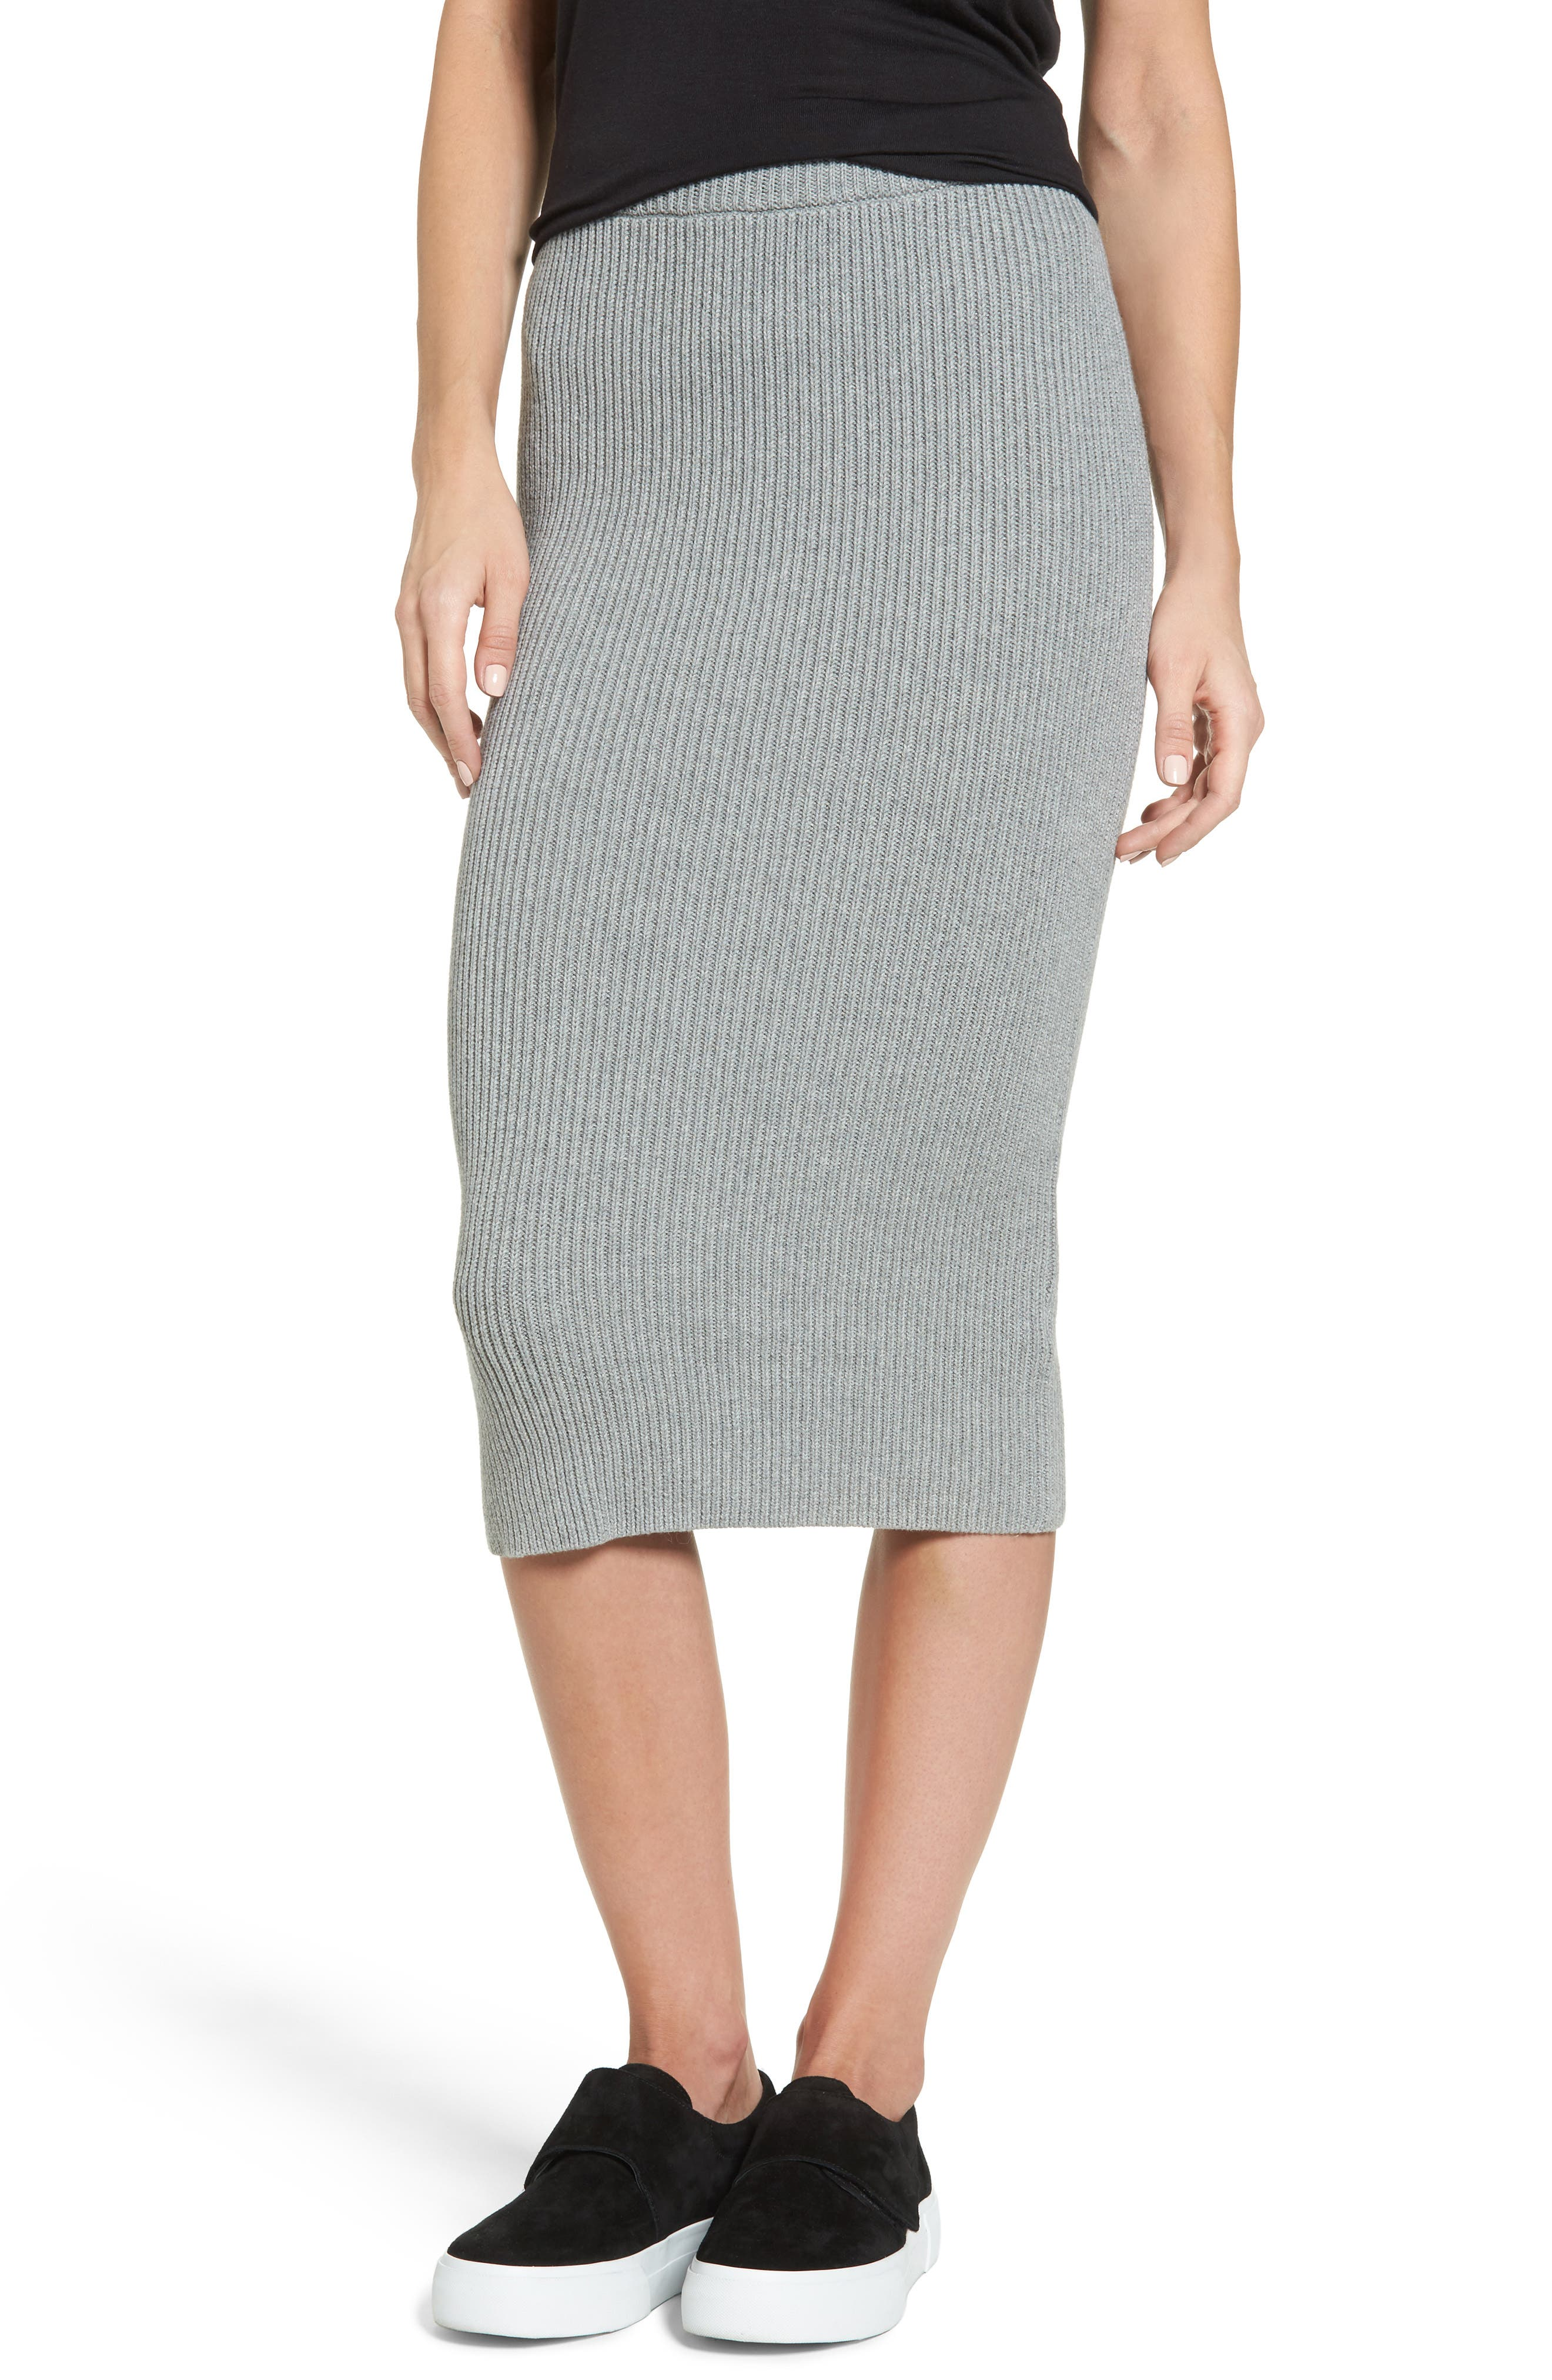 Alternate Image 1 Selected - The Fifth Label Galactic Knit Skirt